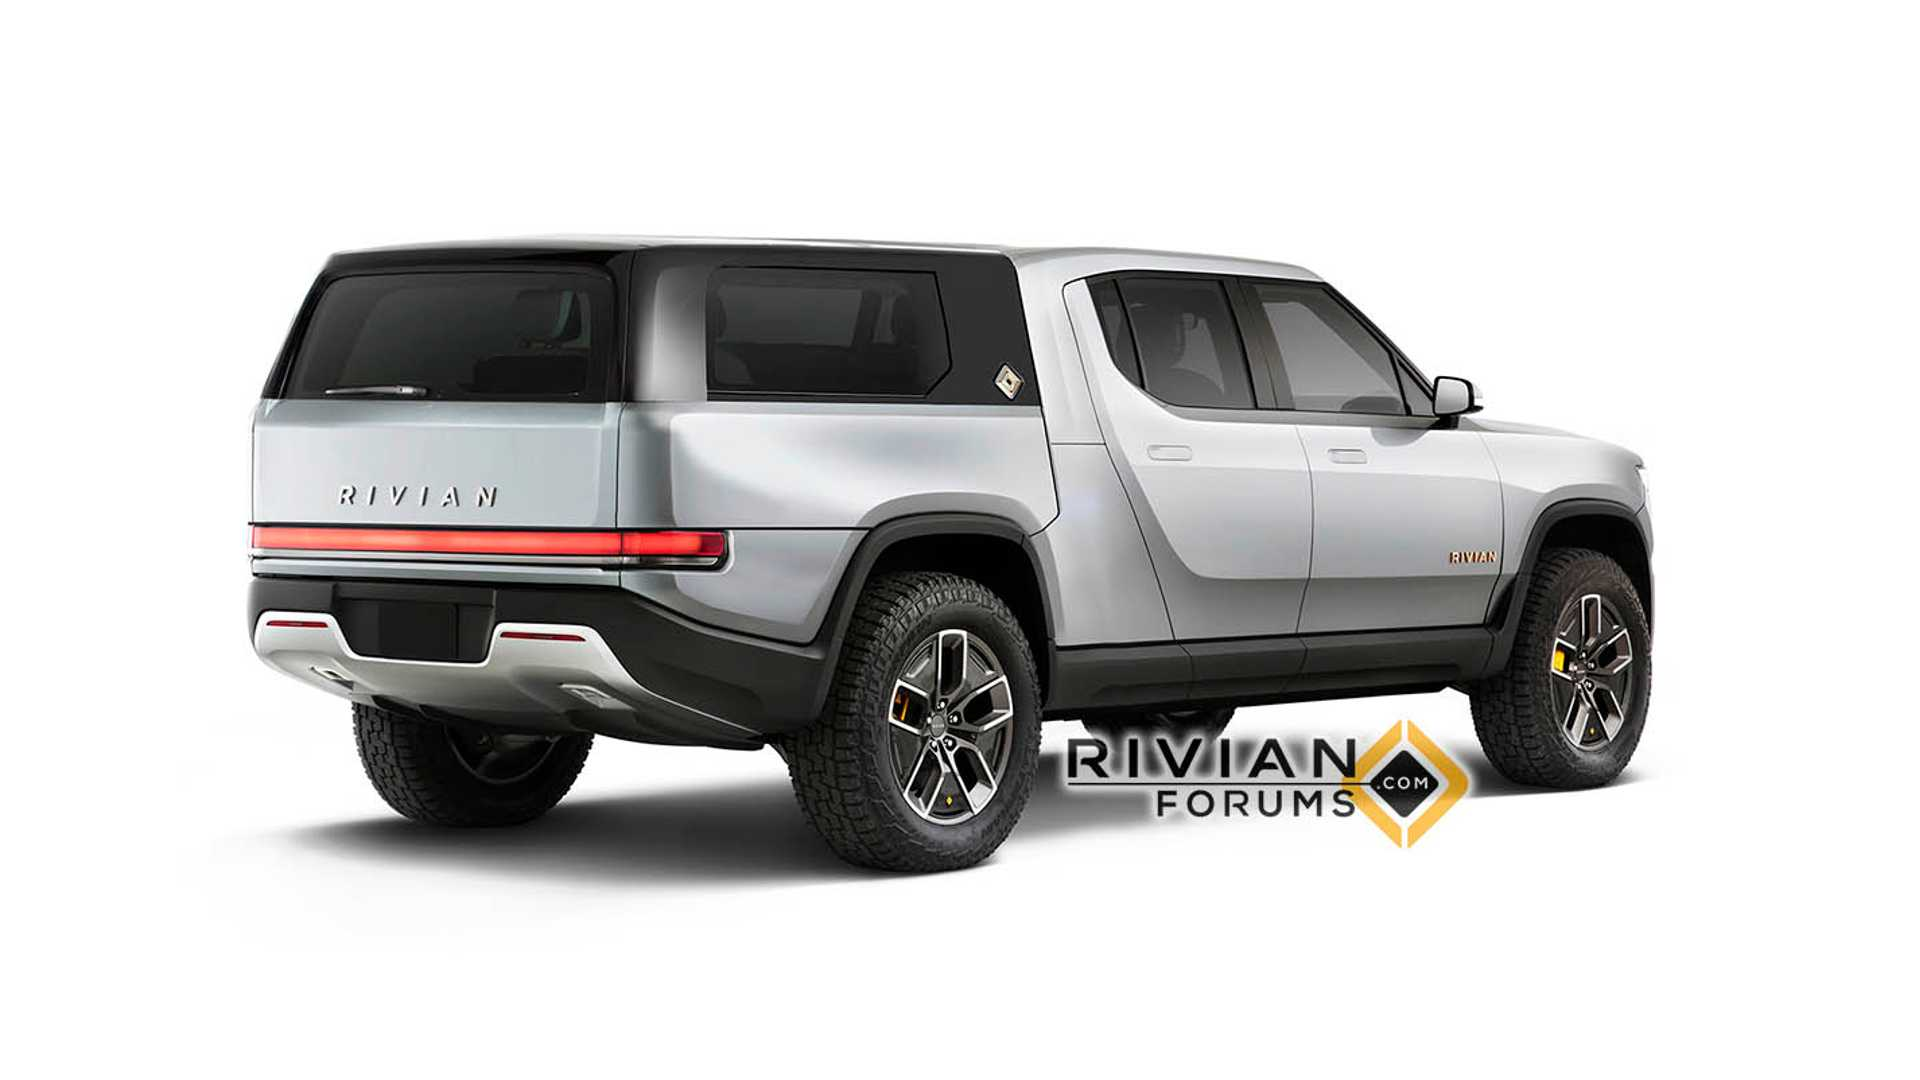 New Rivian R1t Pickup Truck Renders Show Camper Flatbed More